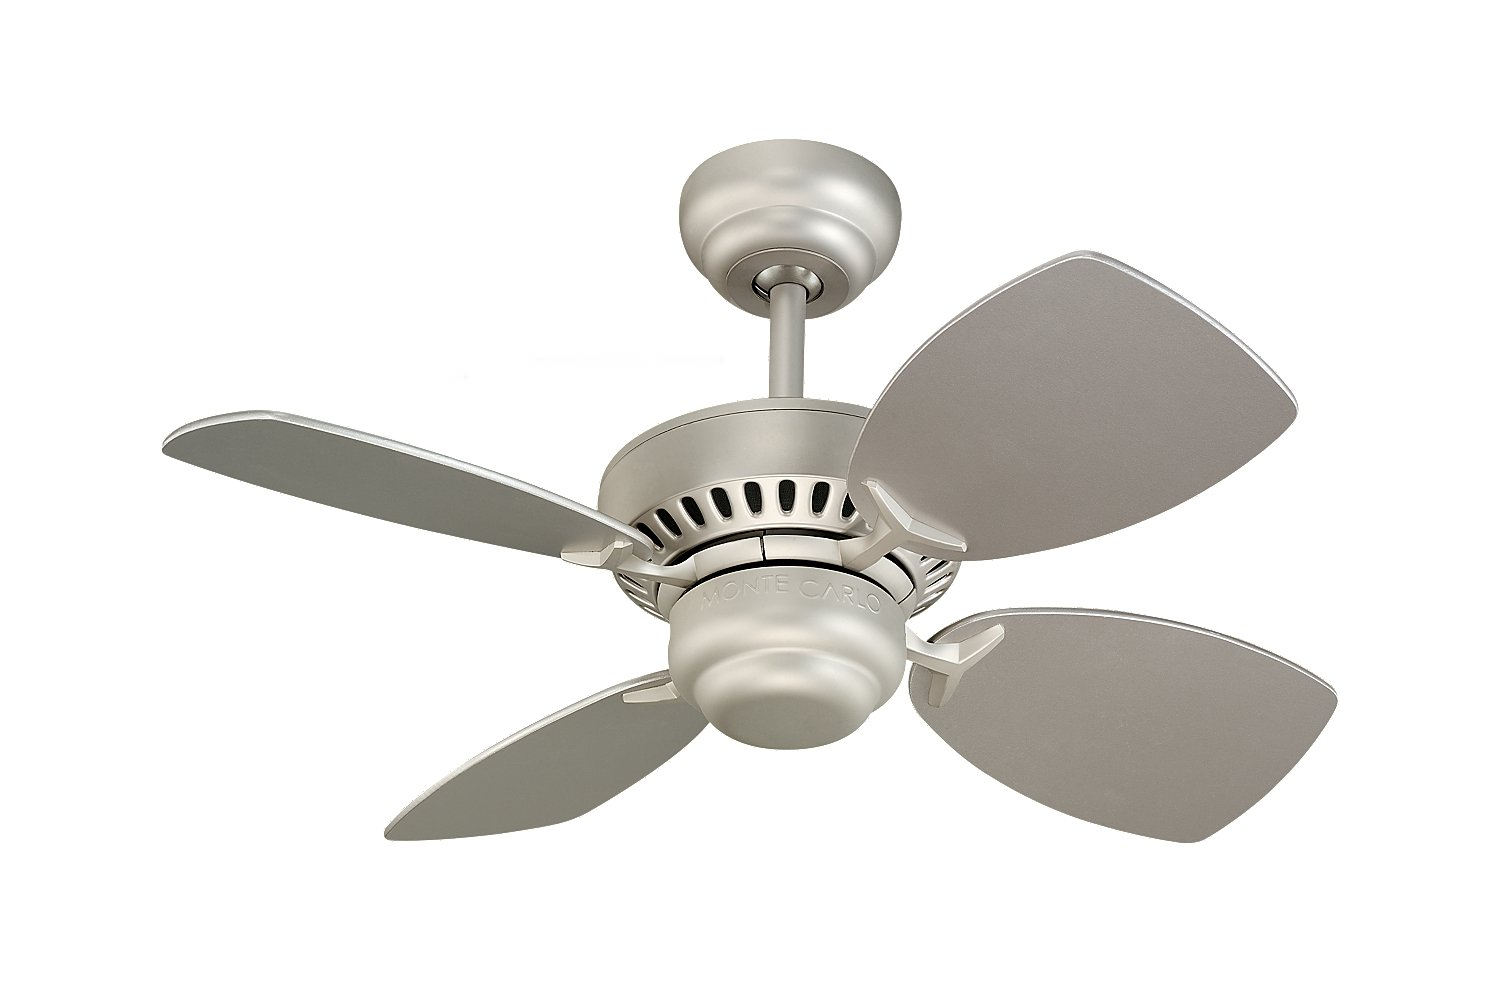 amazon att fan gallery inch ceilings iv lovely reversible low hunter ceiling photo com profile pewter antique fans x of regulations